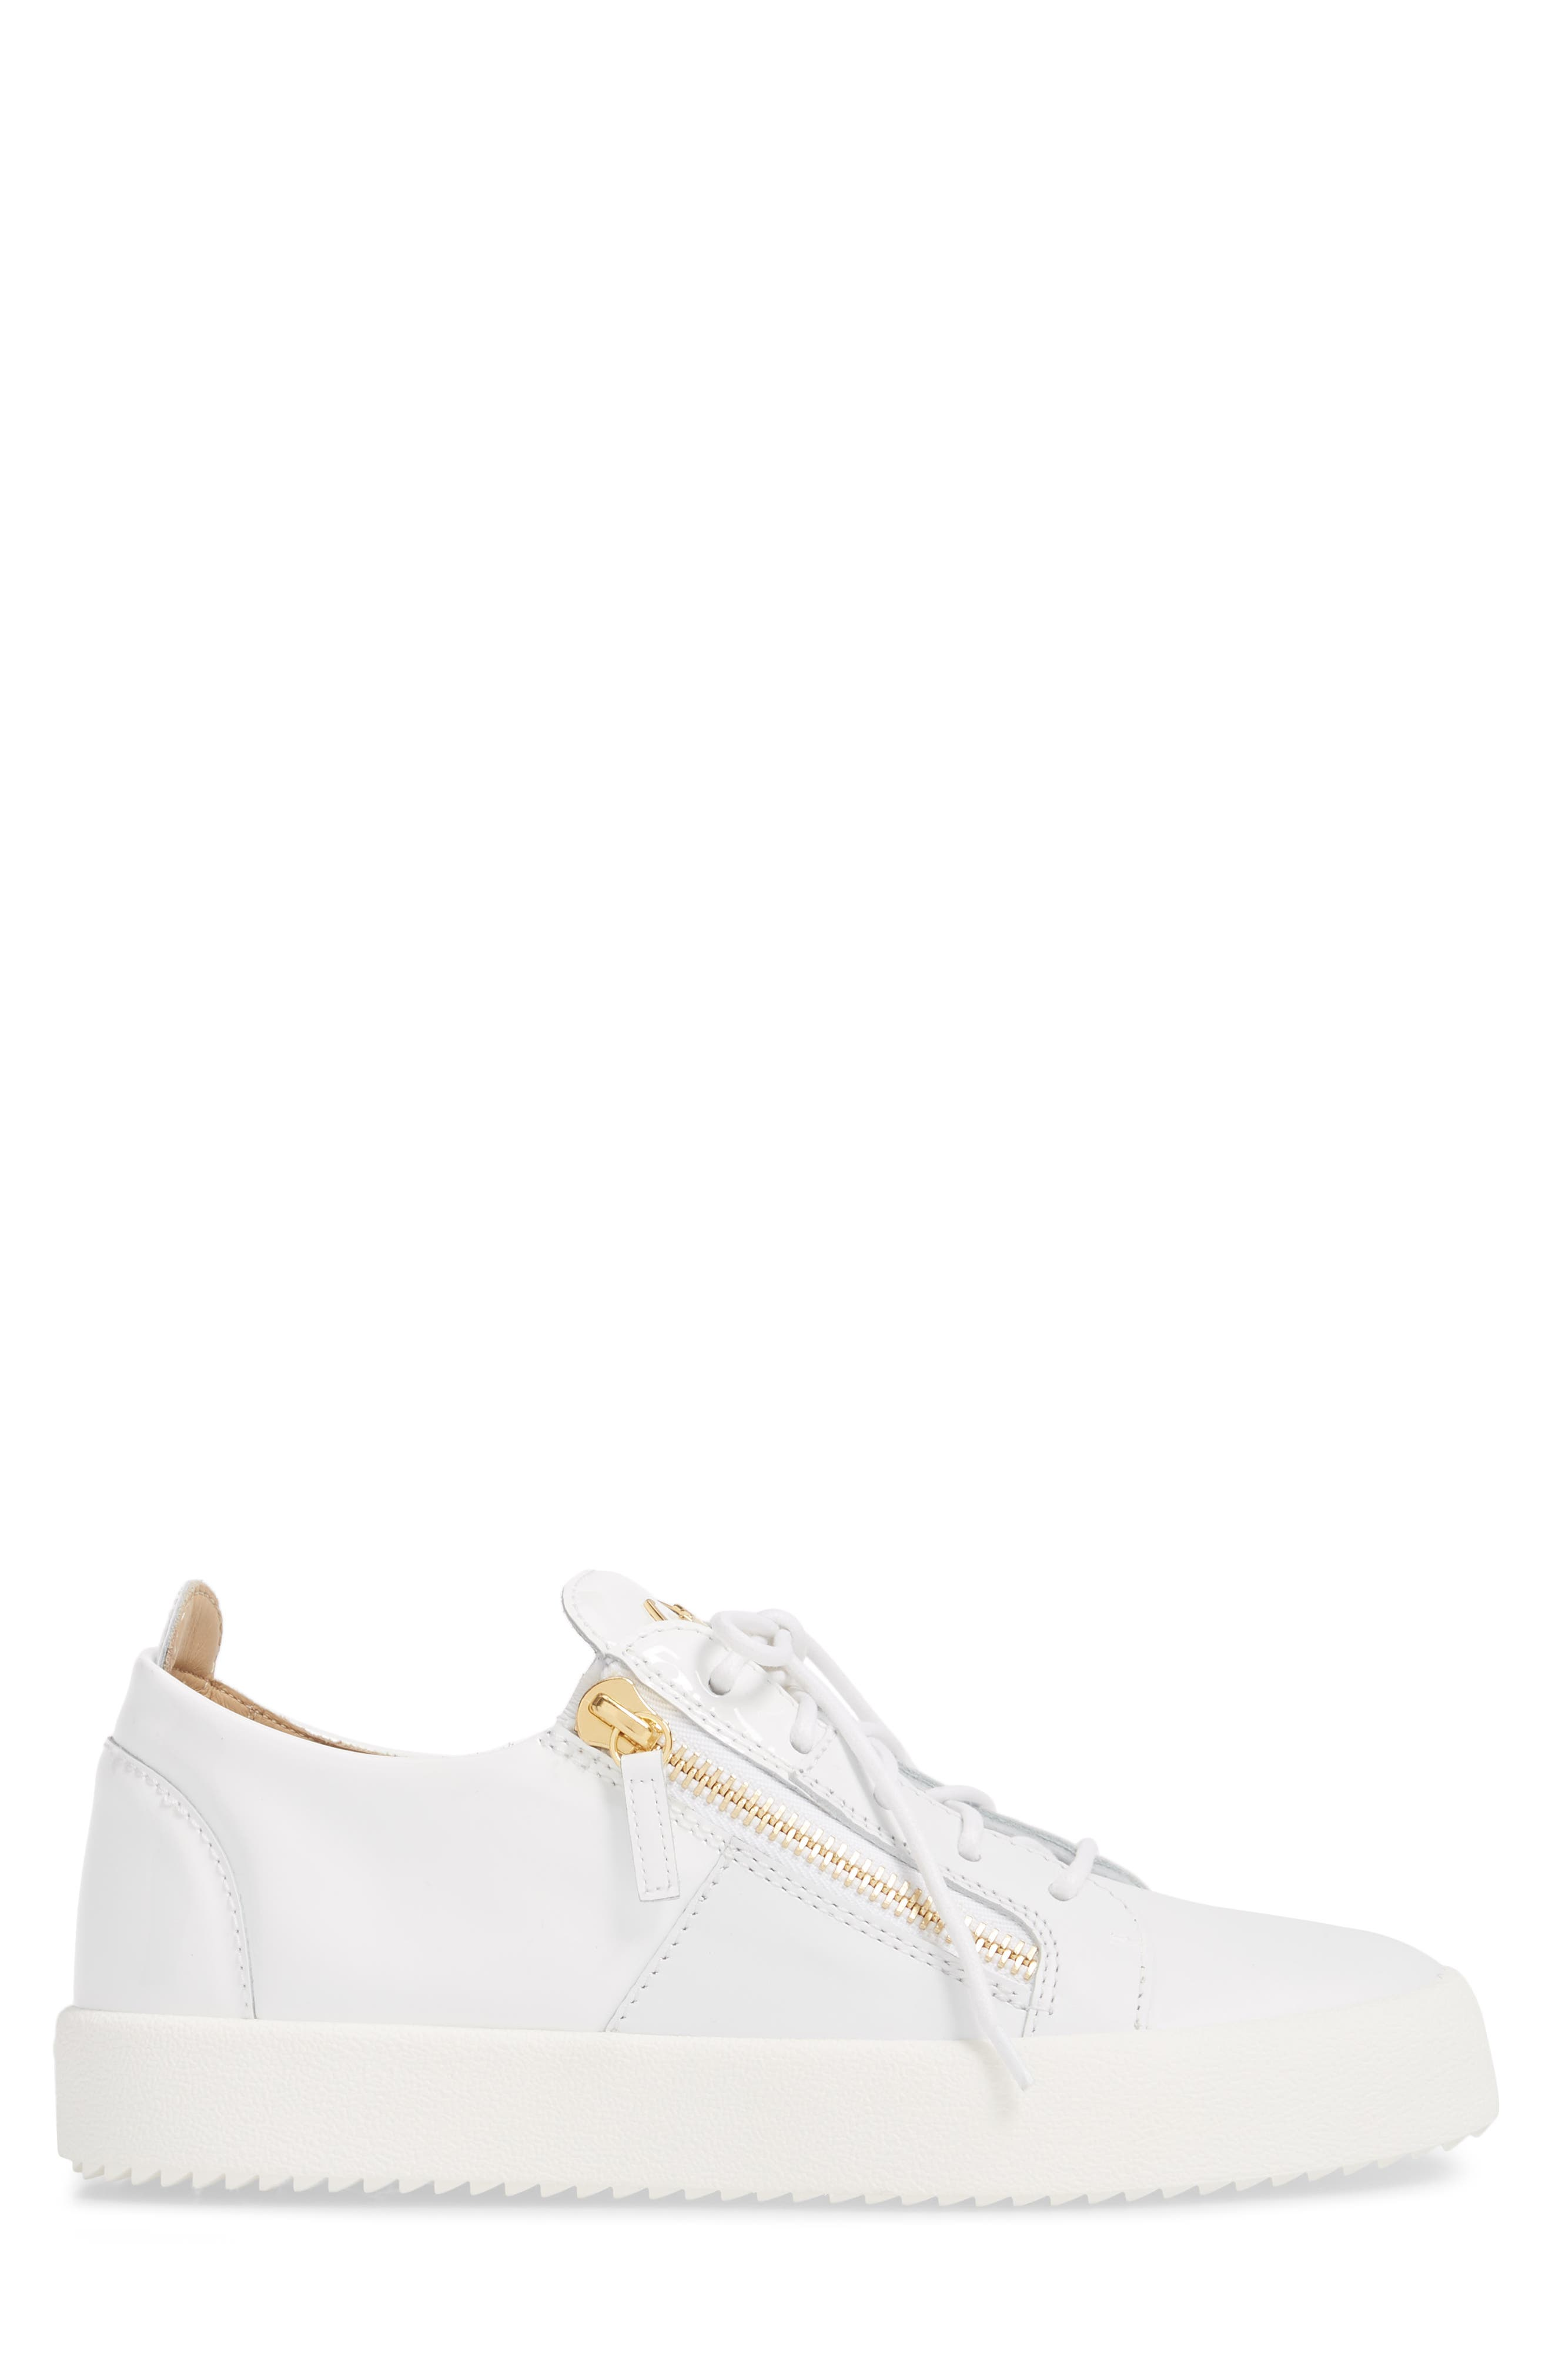 Colorblocked Zip Sneaker,                             Alternate thumbnail 3, color,                             Bianco